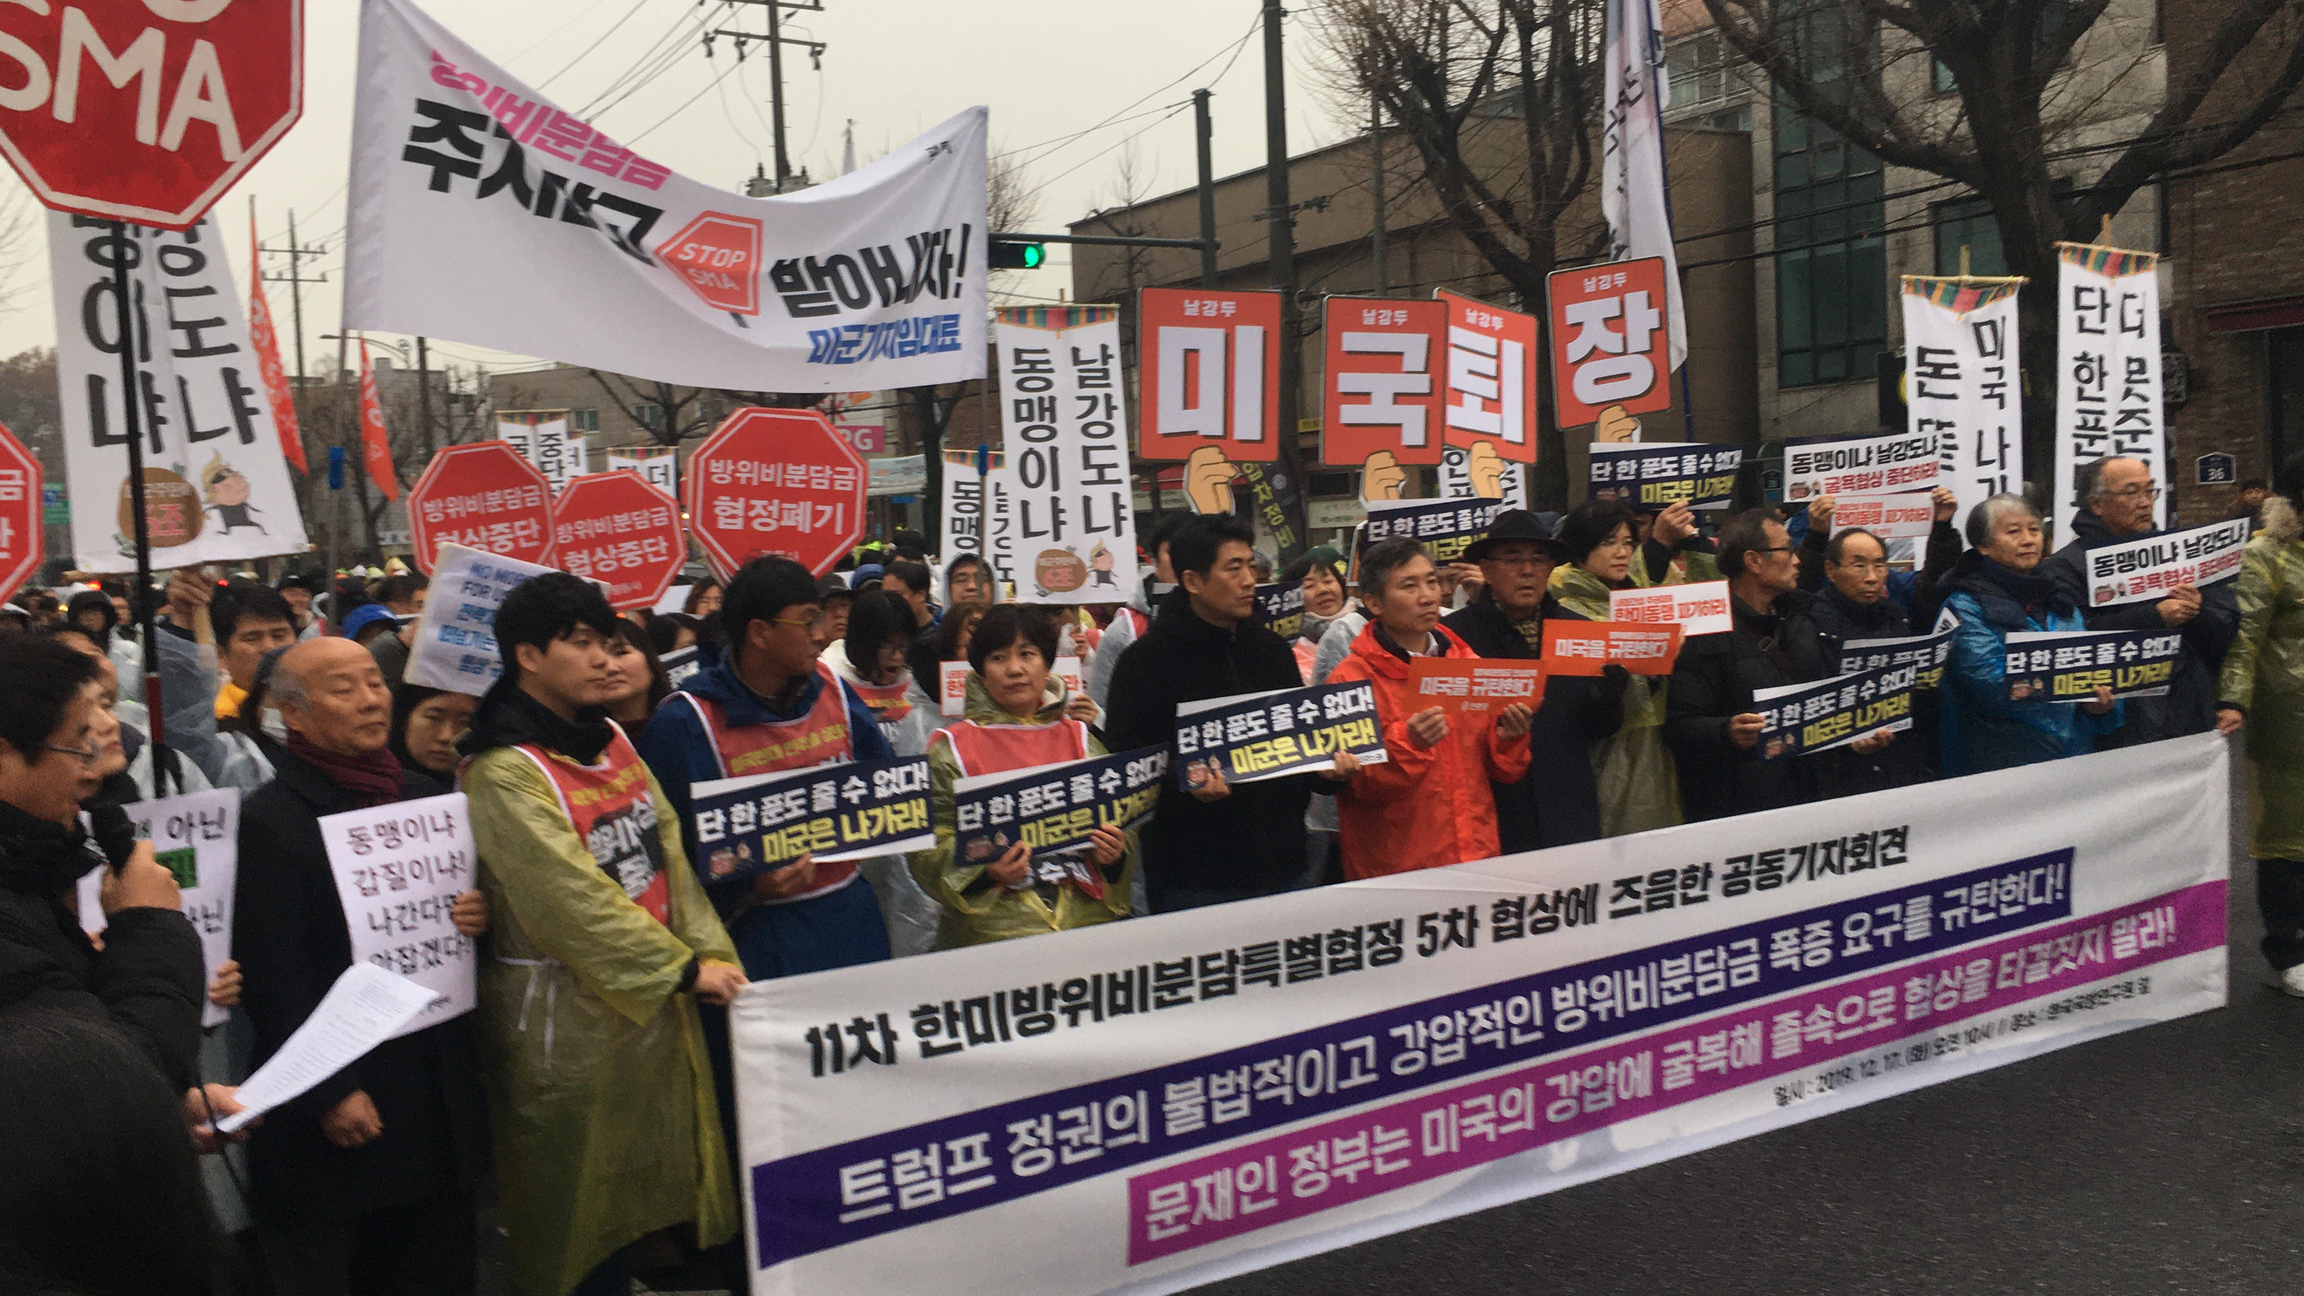 A group of protesters march with a large banner with large words in Korean language